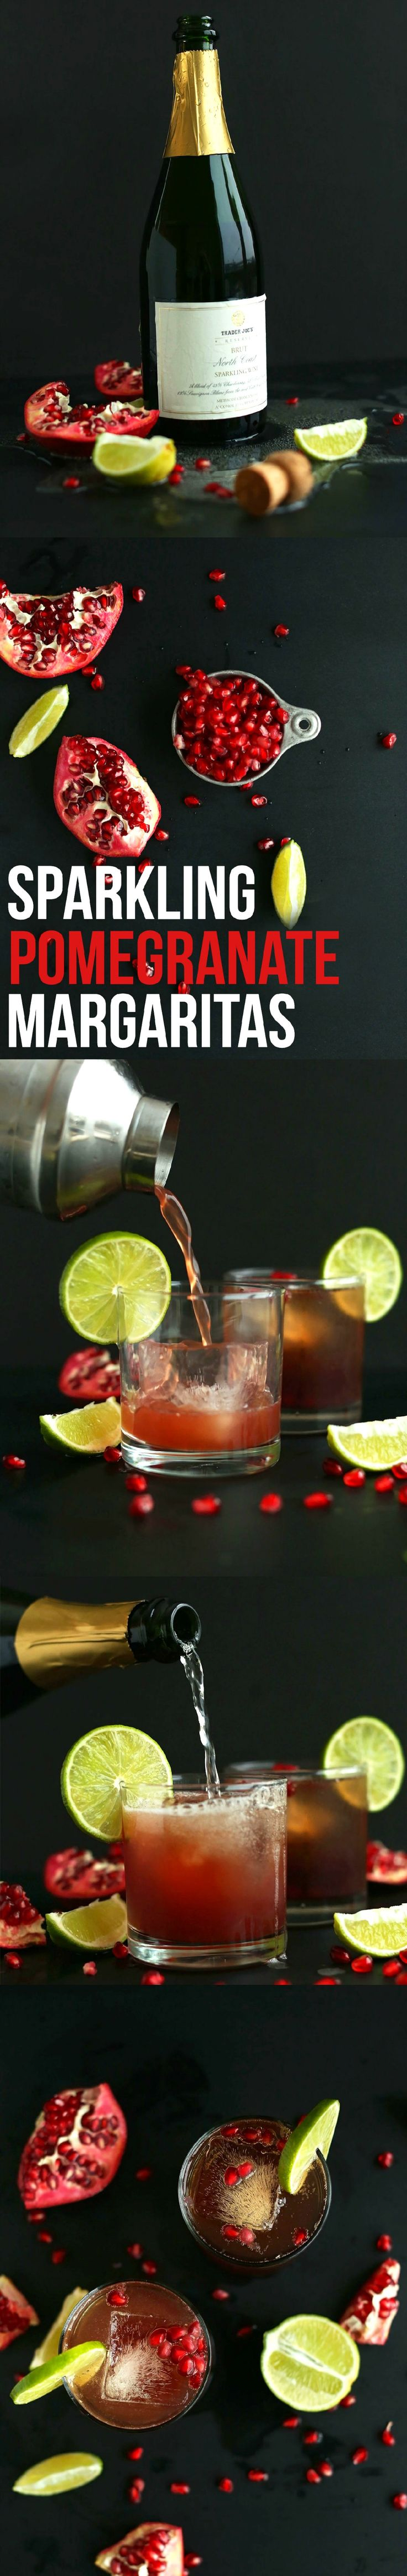 AMAZING 5-ingredient Sparkling Pomegranate Margaritas! Perfect bubbly cocktail for NYE and special occasions!